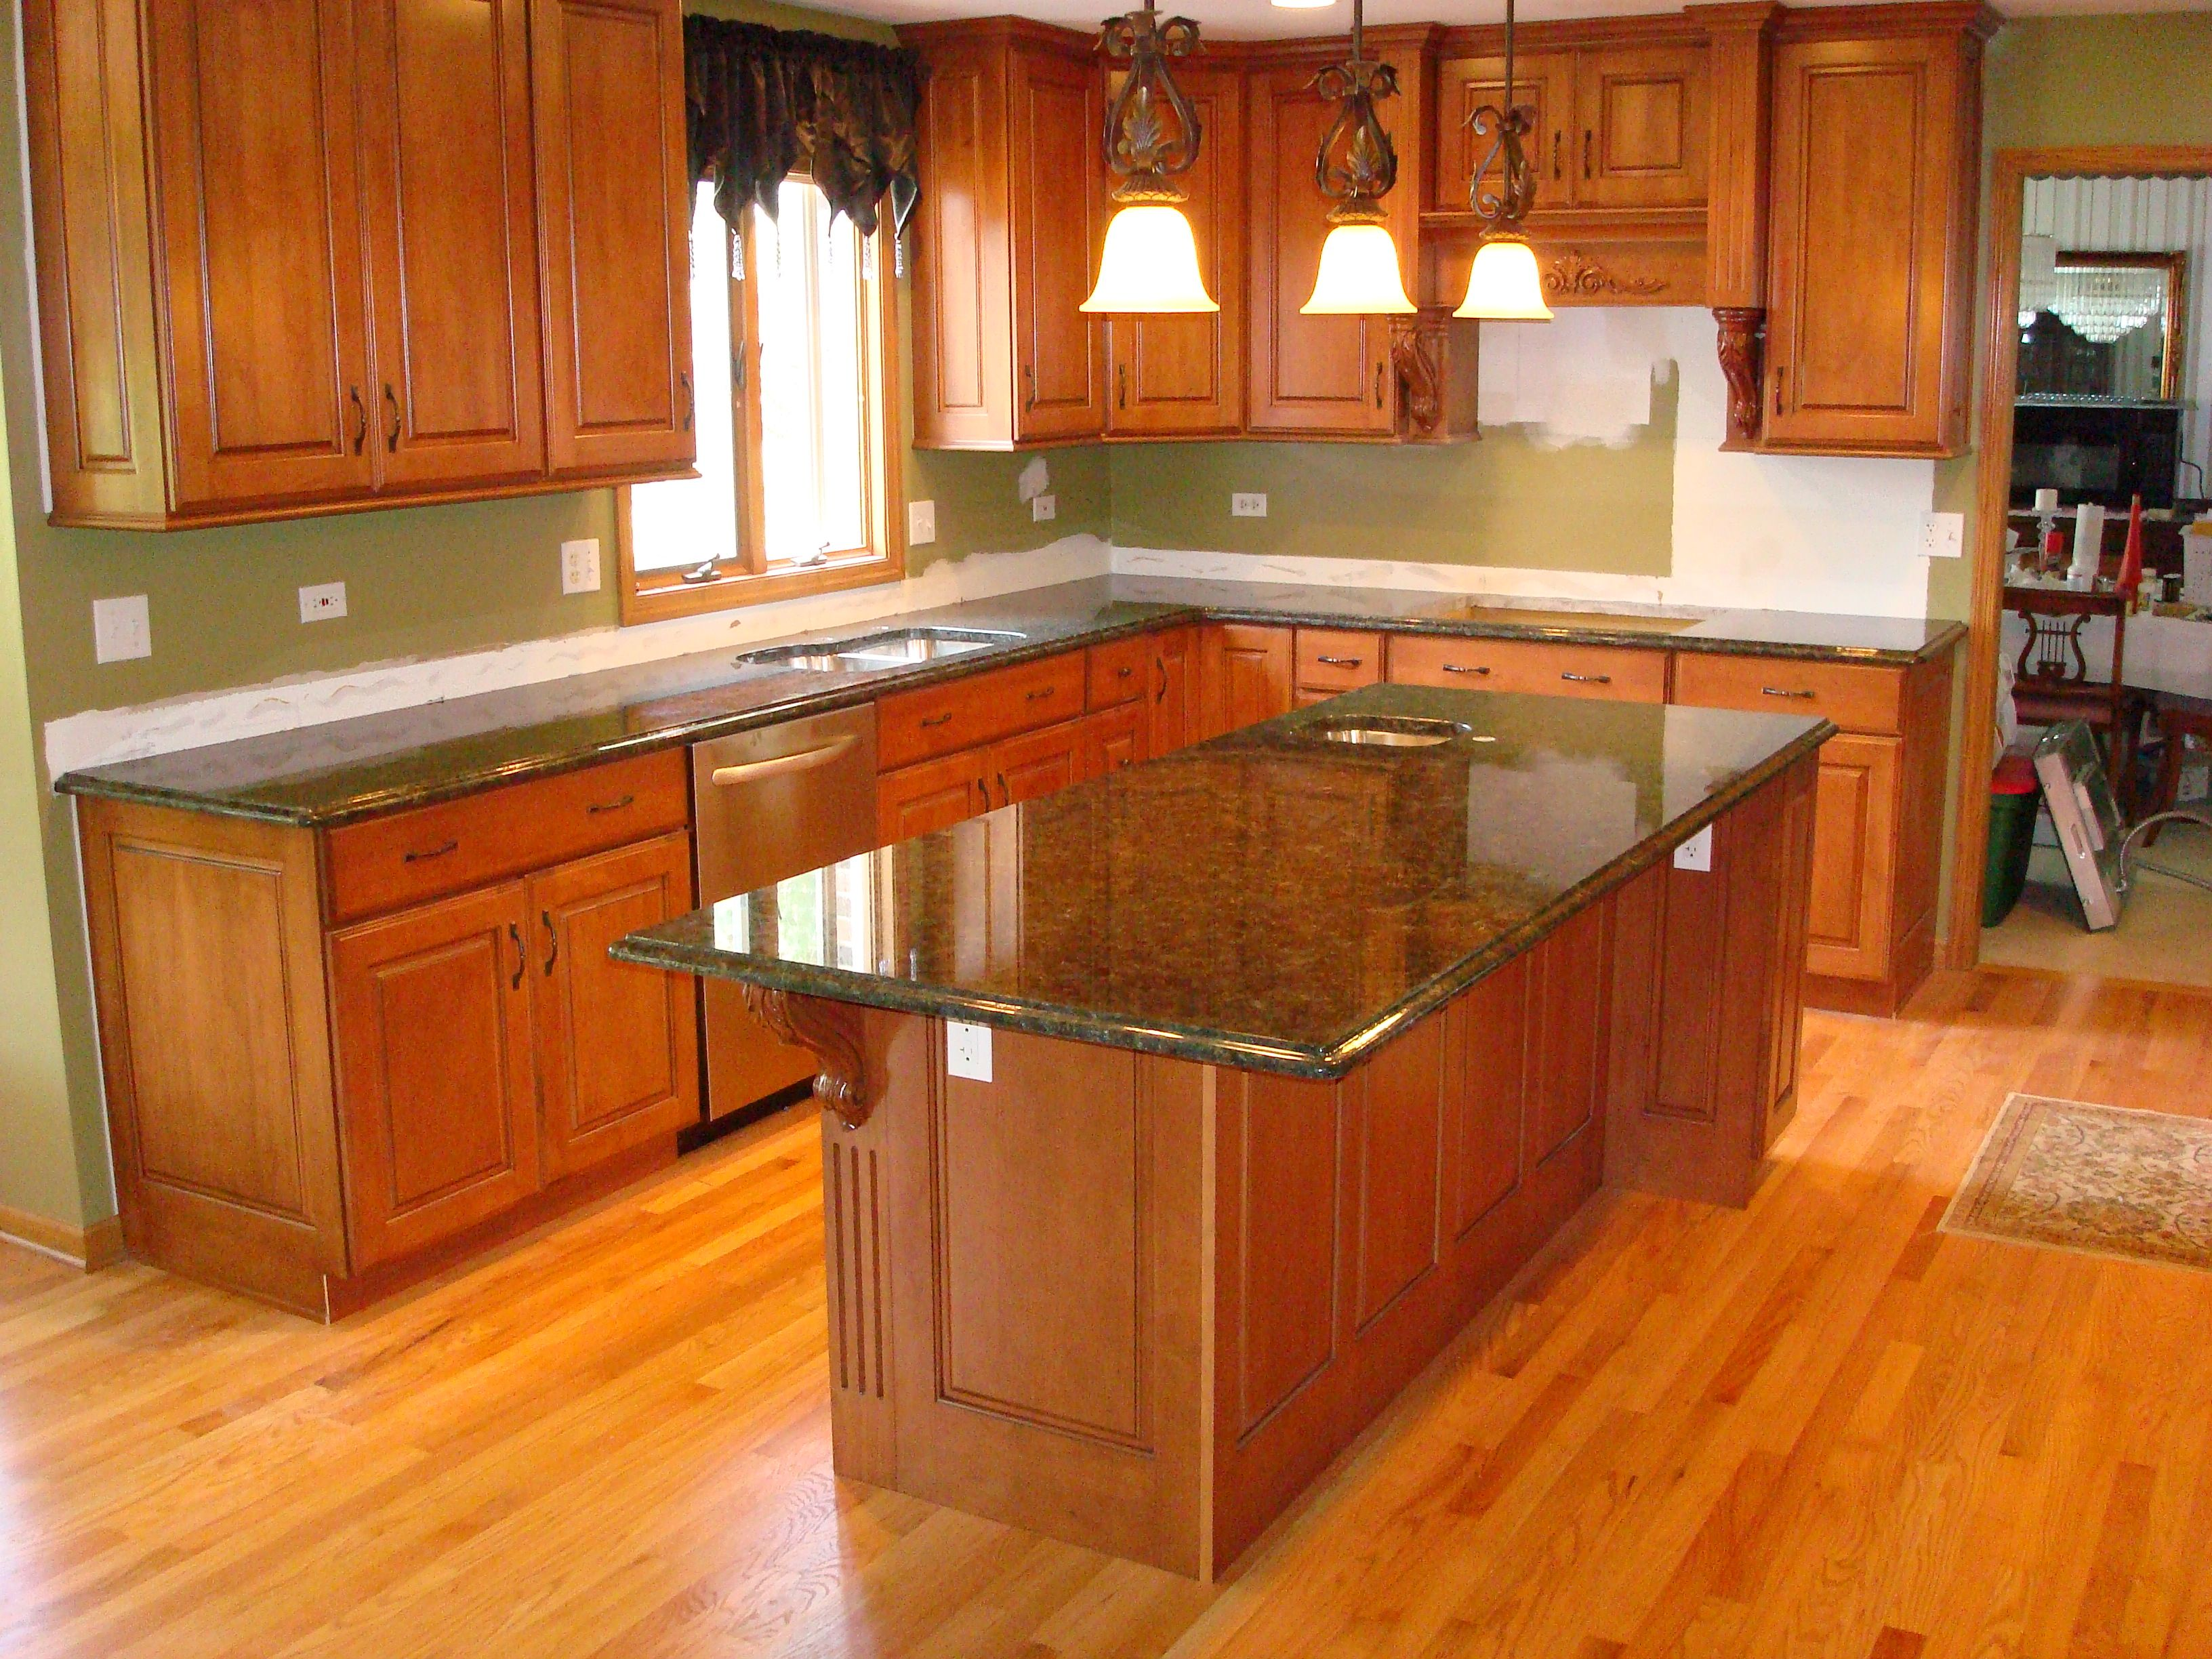 kitchens with green granite countertops | mail: sales ...